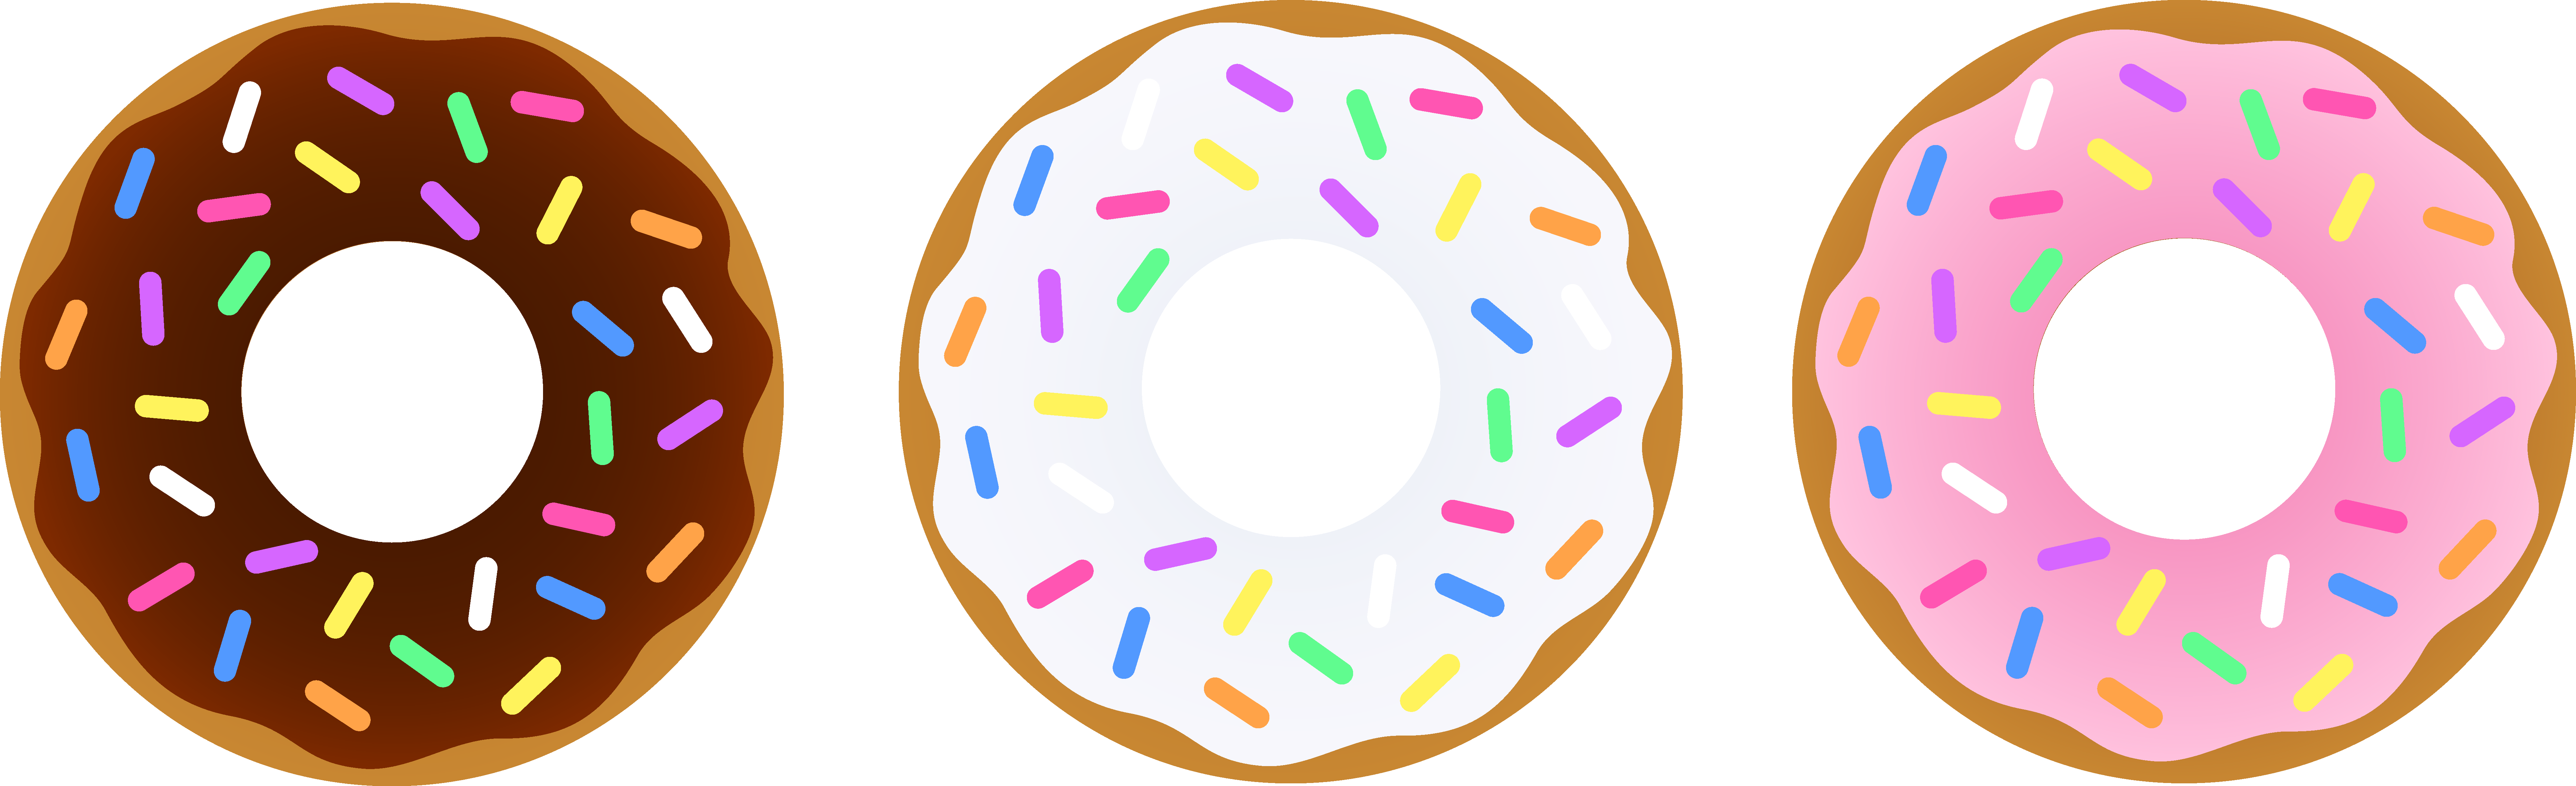 Donuts clipart word. Donut free simple cliparts